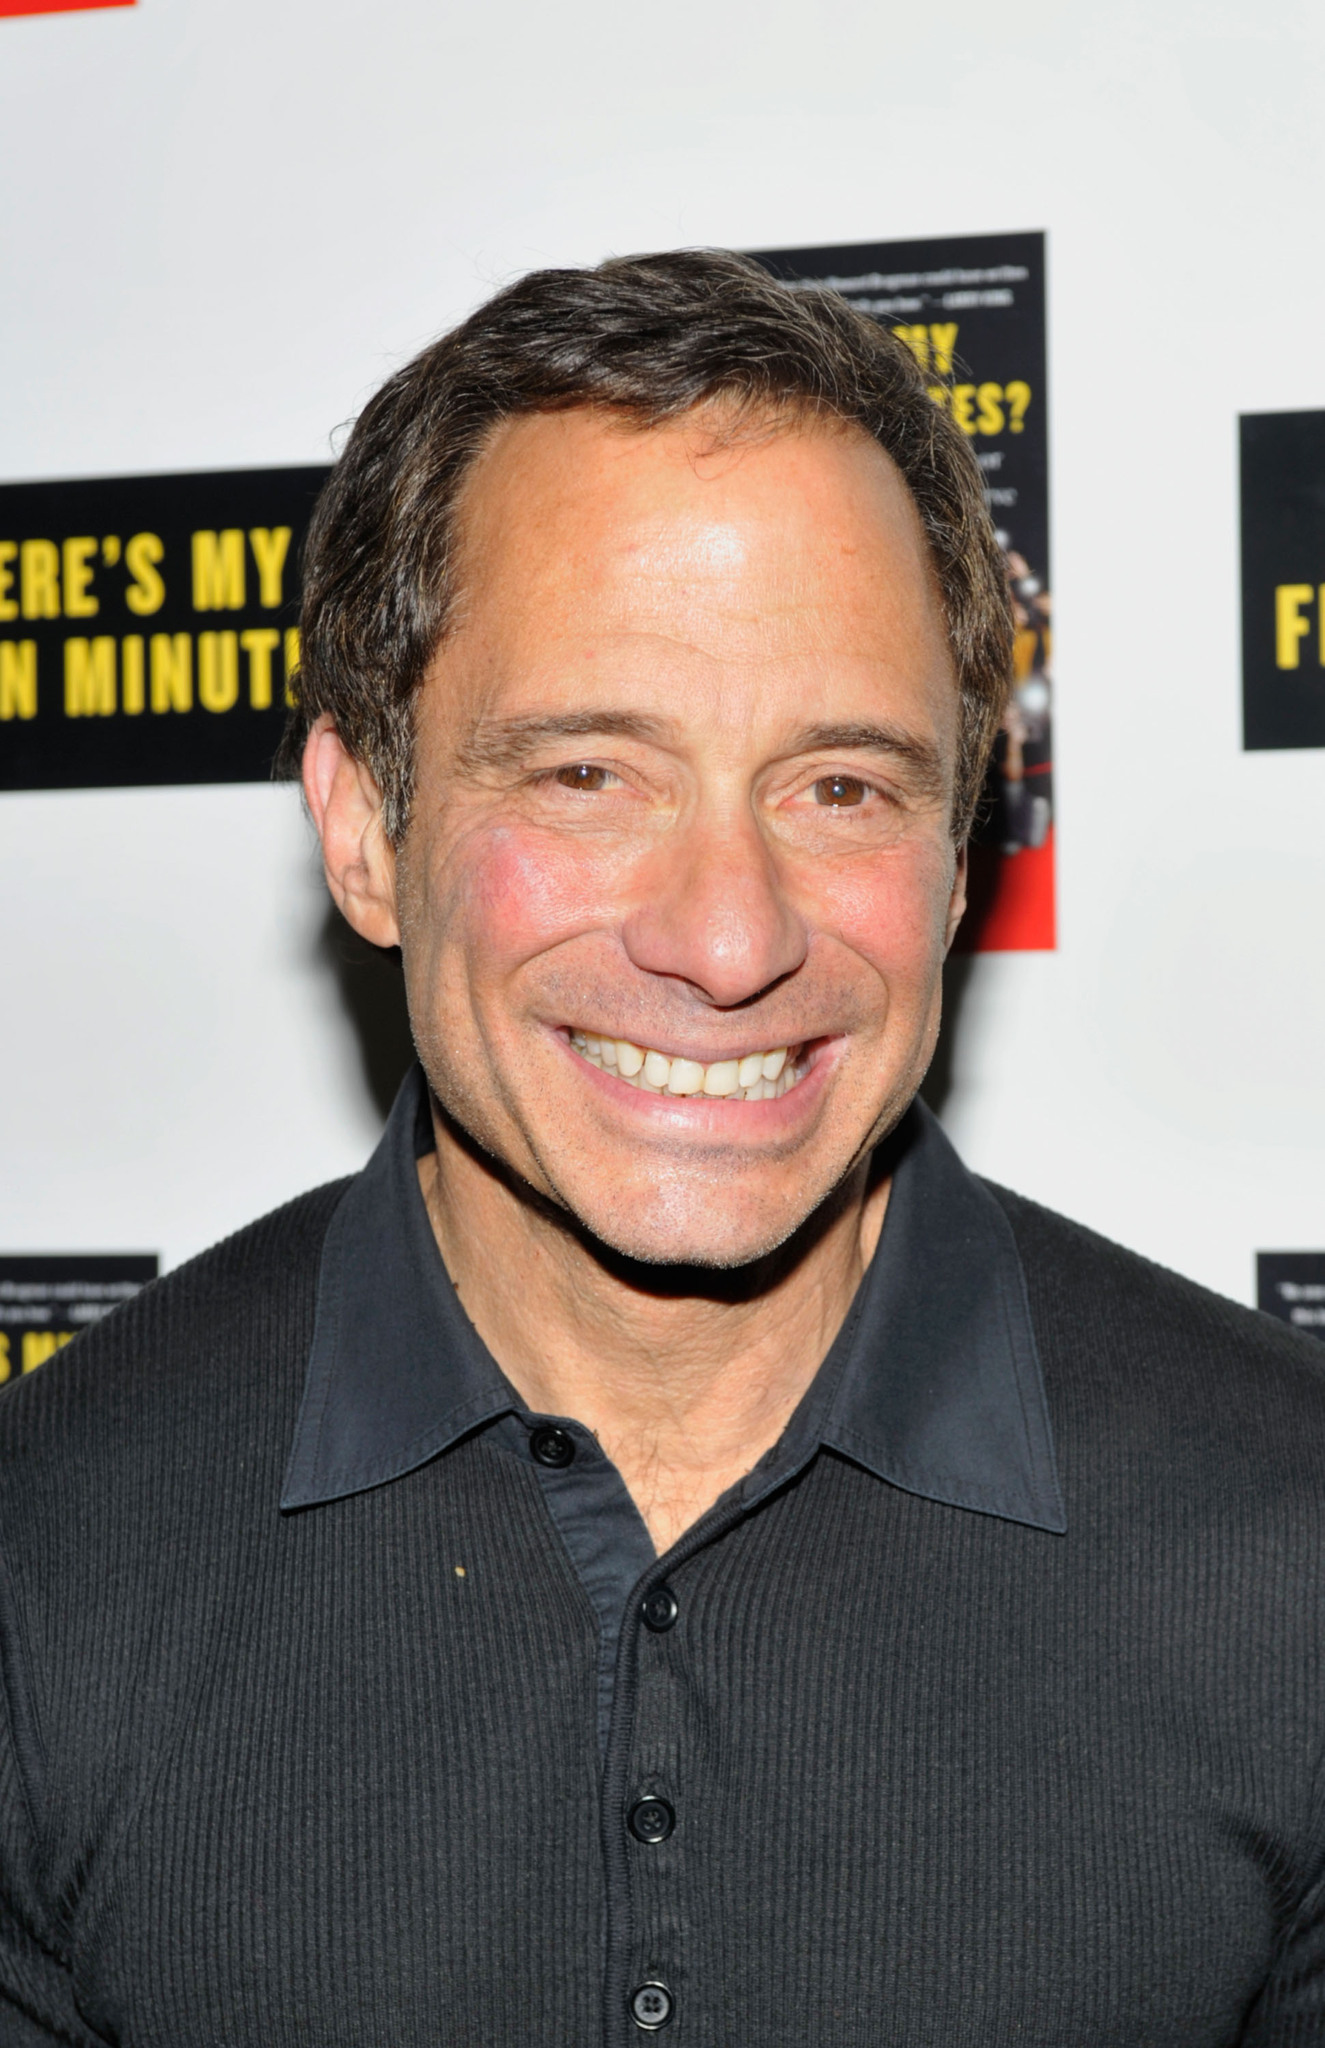 The 68-year old son of father (?) and mother(?) Harvey Levin in 2018 photo. Harvey Levin earned a  million dollar salary - leaving the net worth at  million in 2018